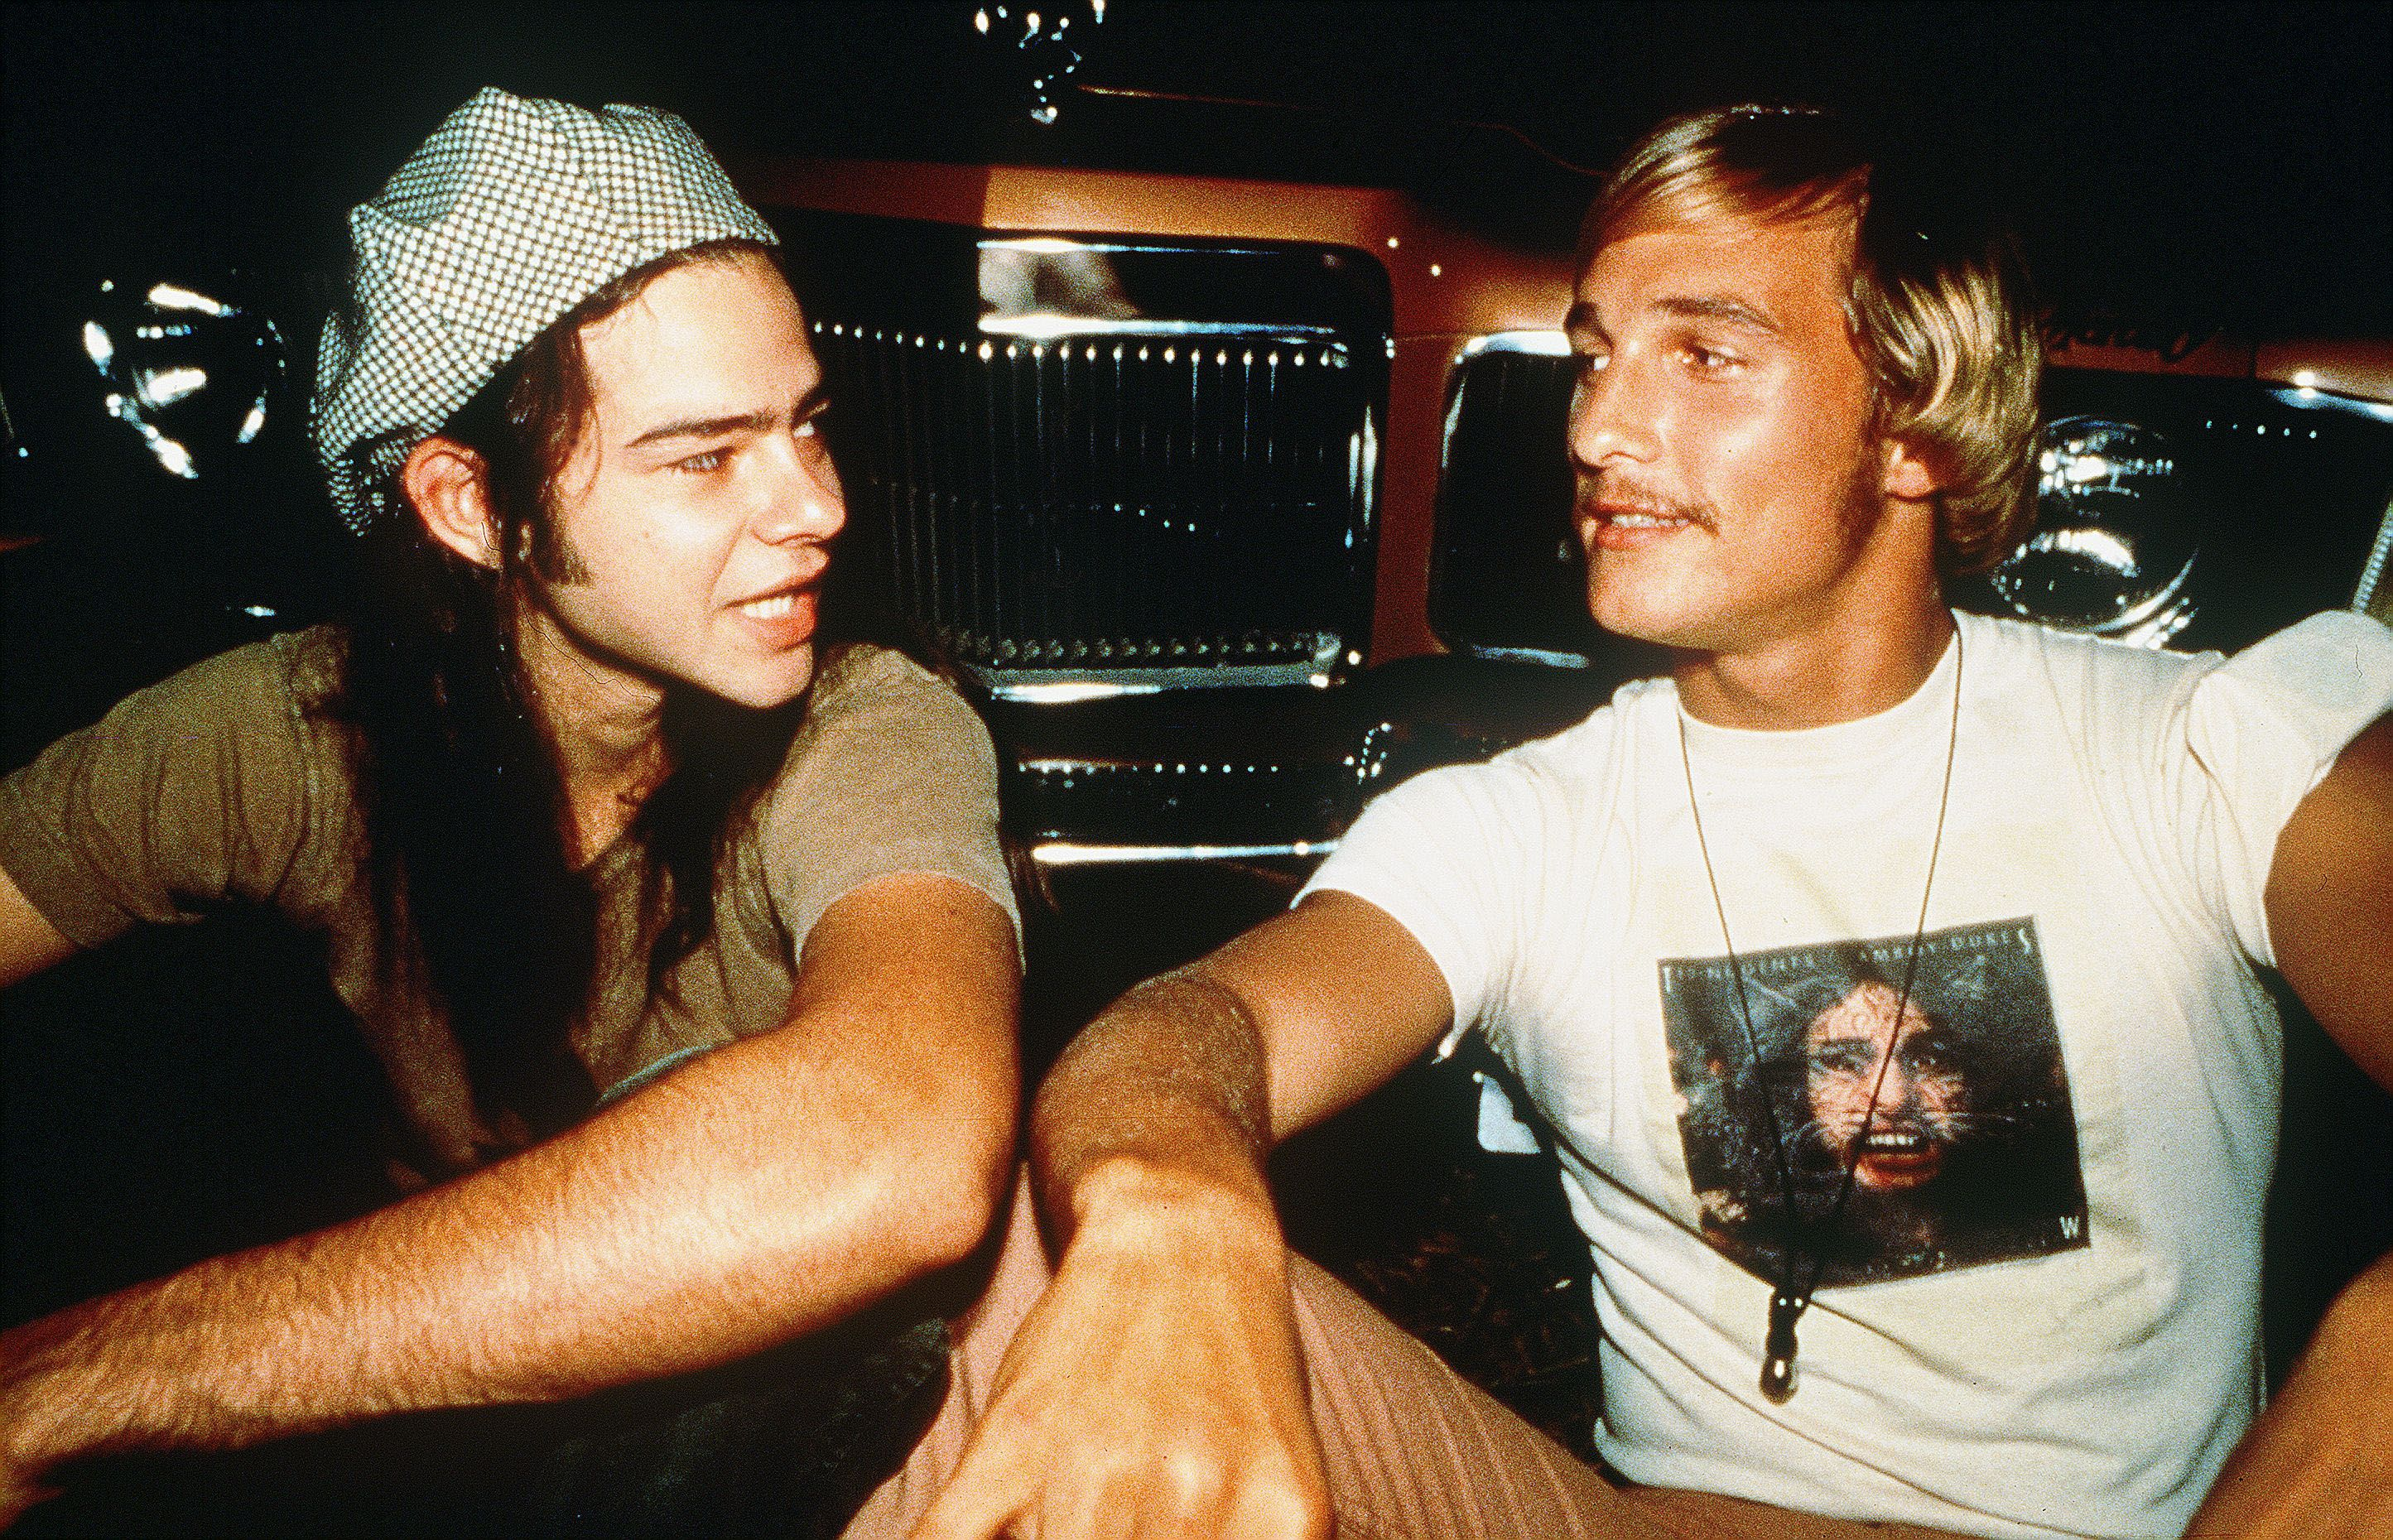 Rory Cochrane, Matthew McConaughey, Dazed and Confused